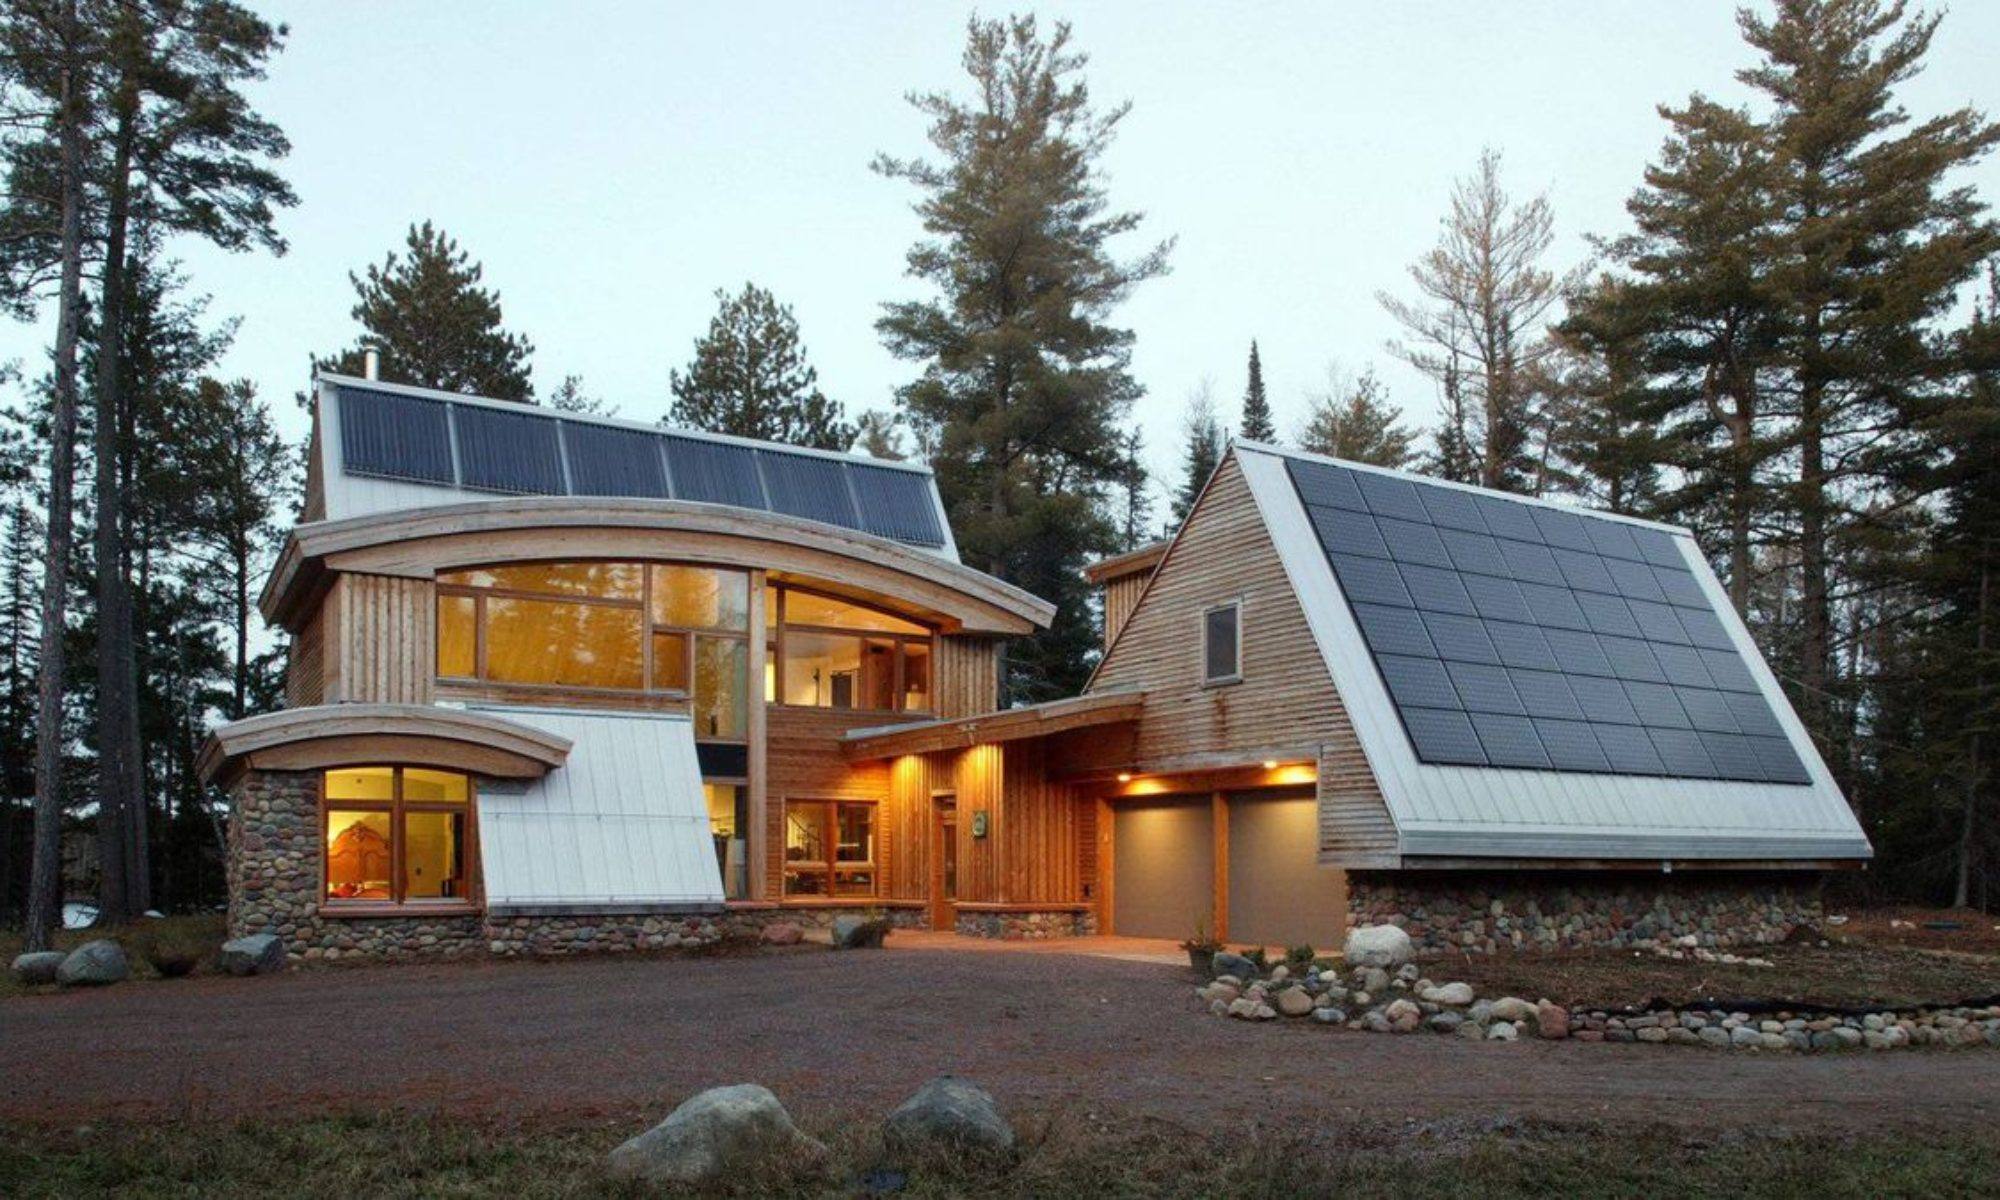 cropped 67D4OVNFDNEGTLW3UBF7S3QSKQ - What's a Passive House? And How Can I Improve My Home's Efficiency?